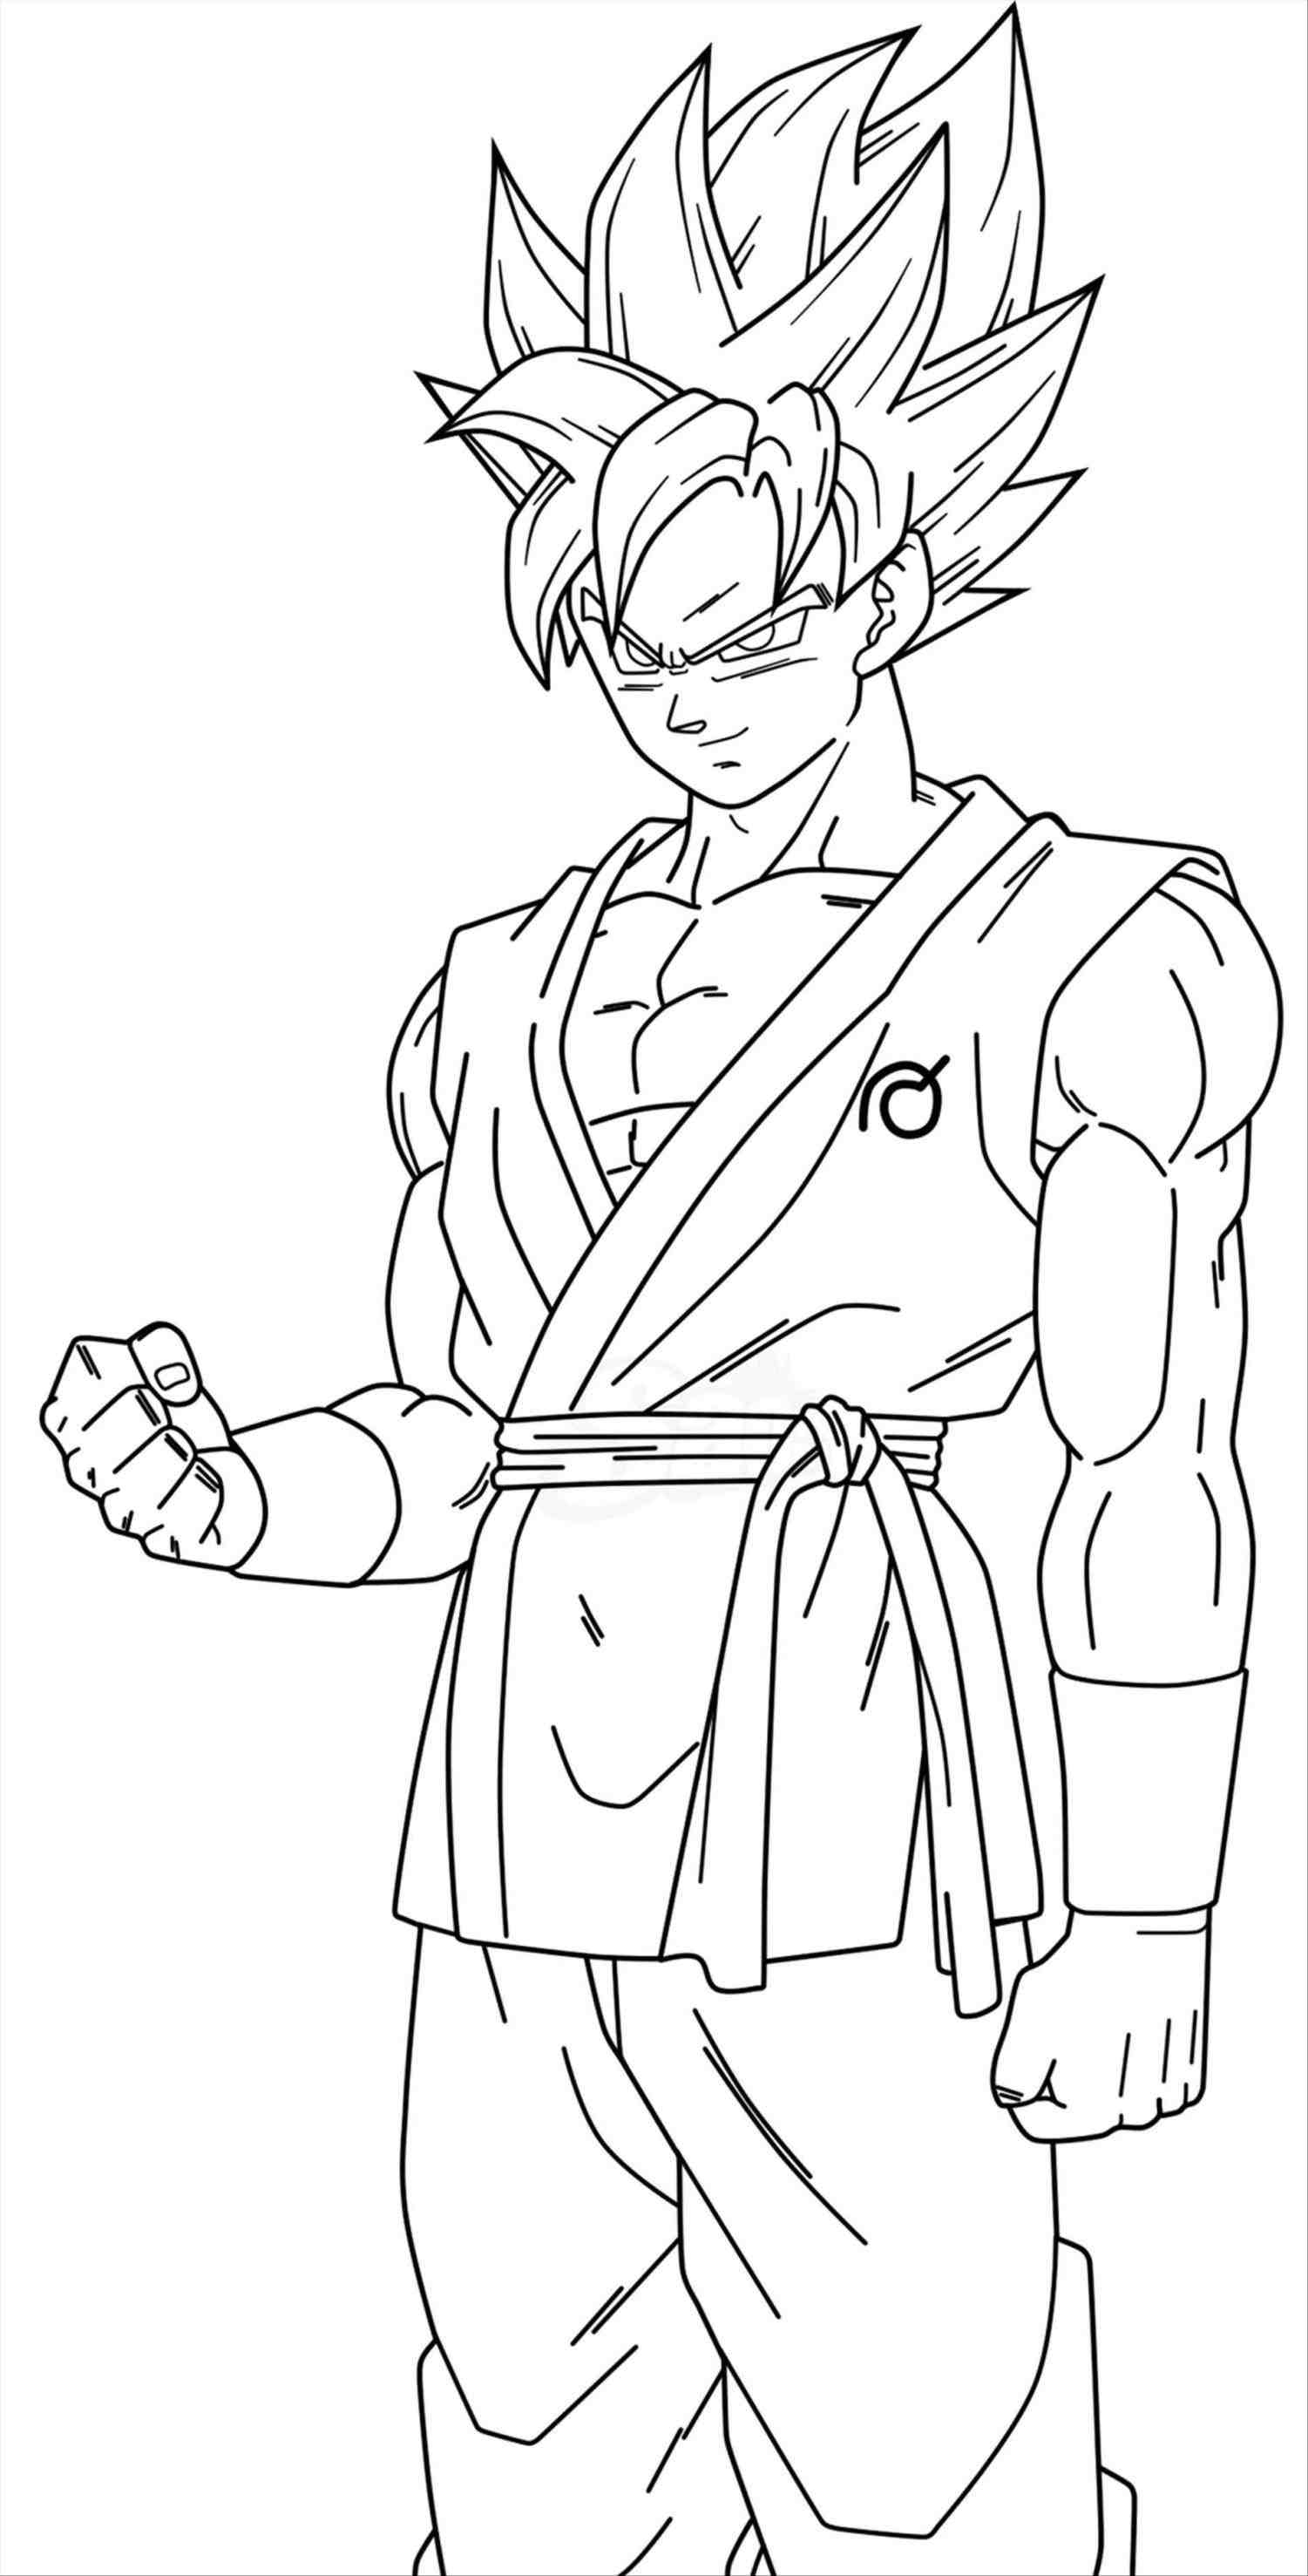 goku black coloring pages goku ssgss lineart by al3x796 on deviantart pages goku black coloring